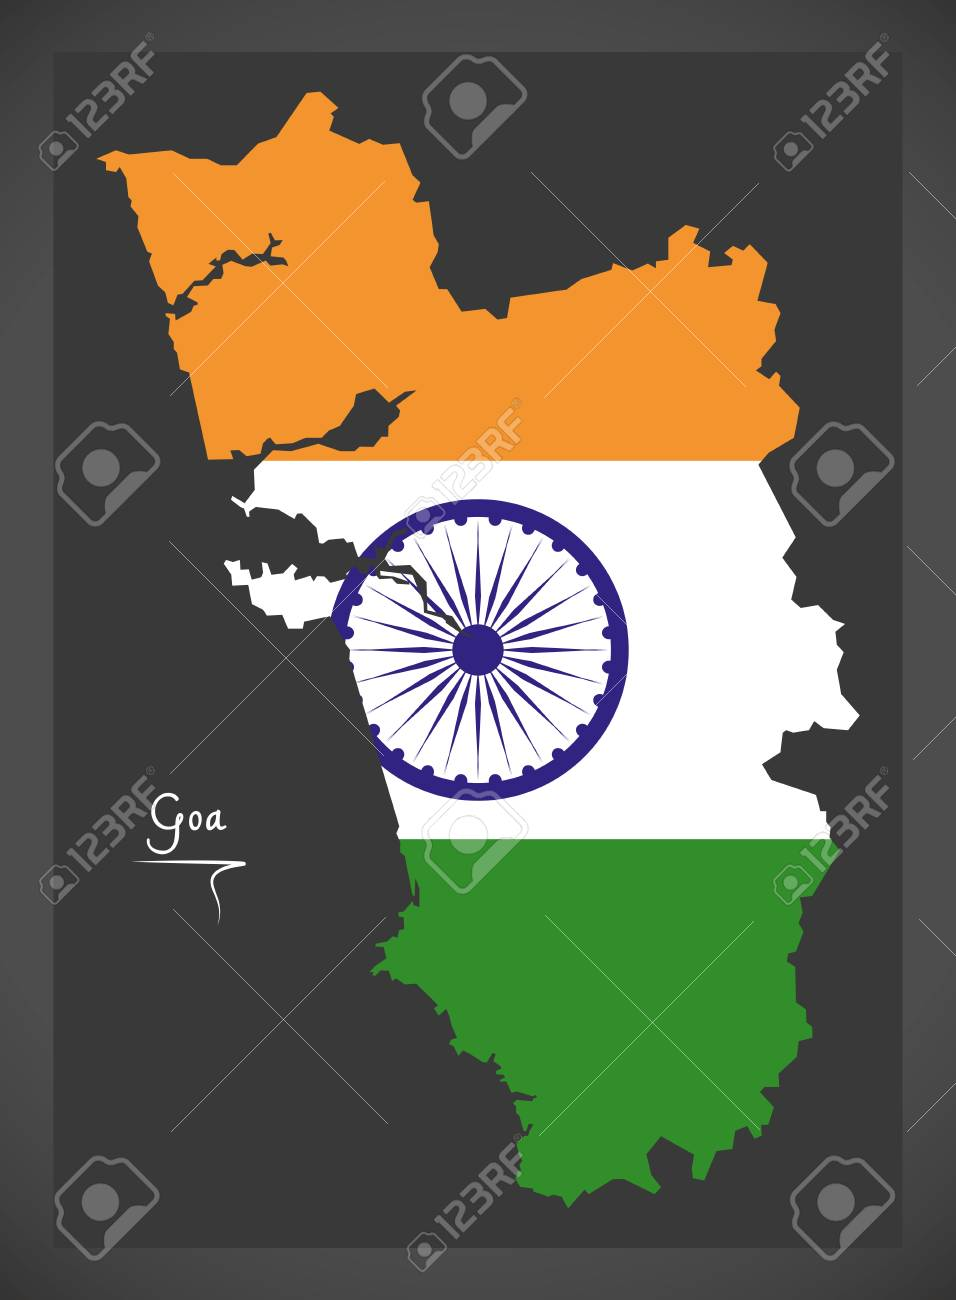 Royalty Free Map%0A Goa map with Indian national flag illustration Stock Vector